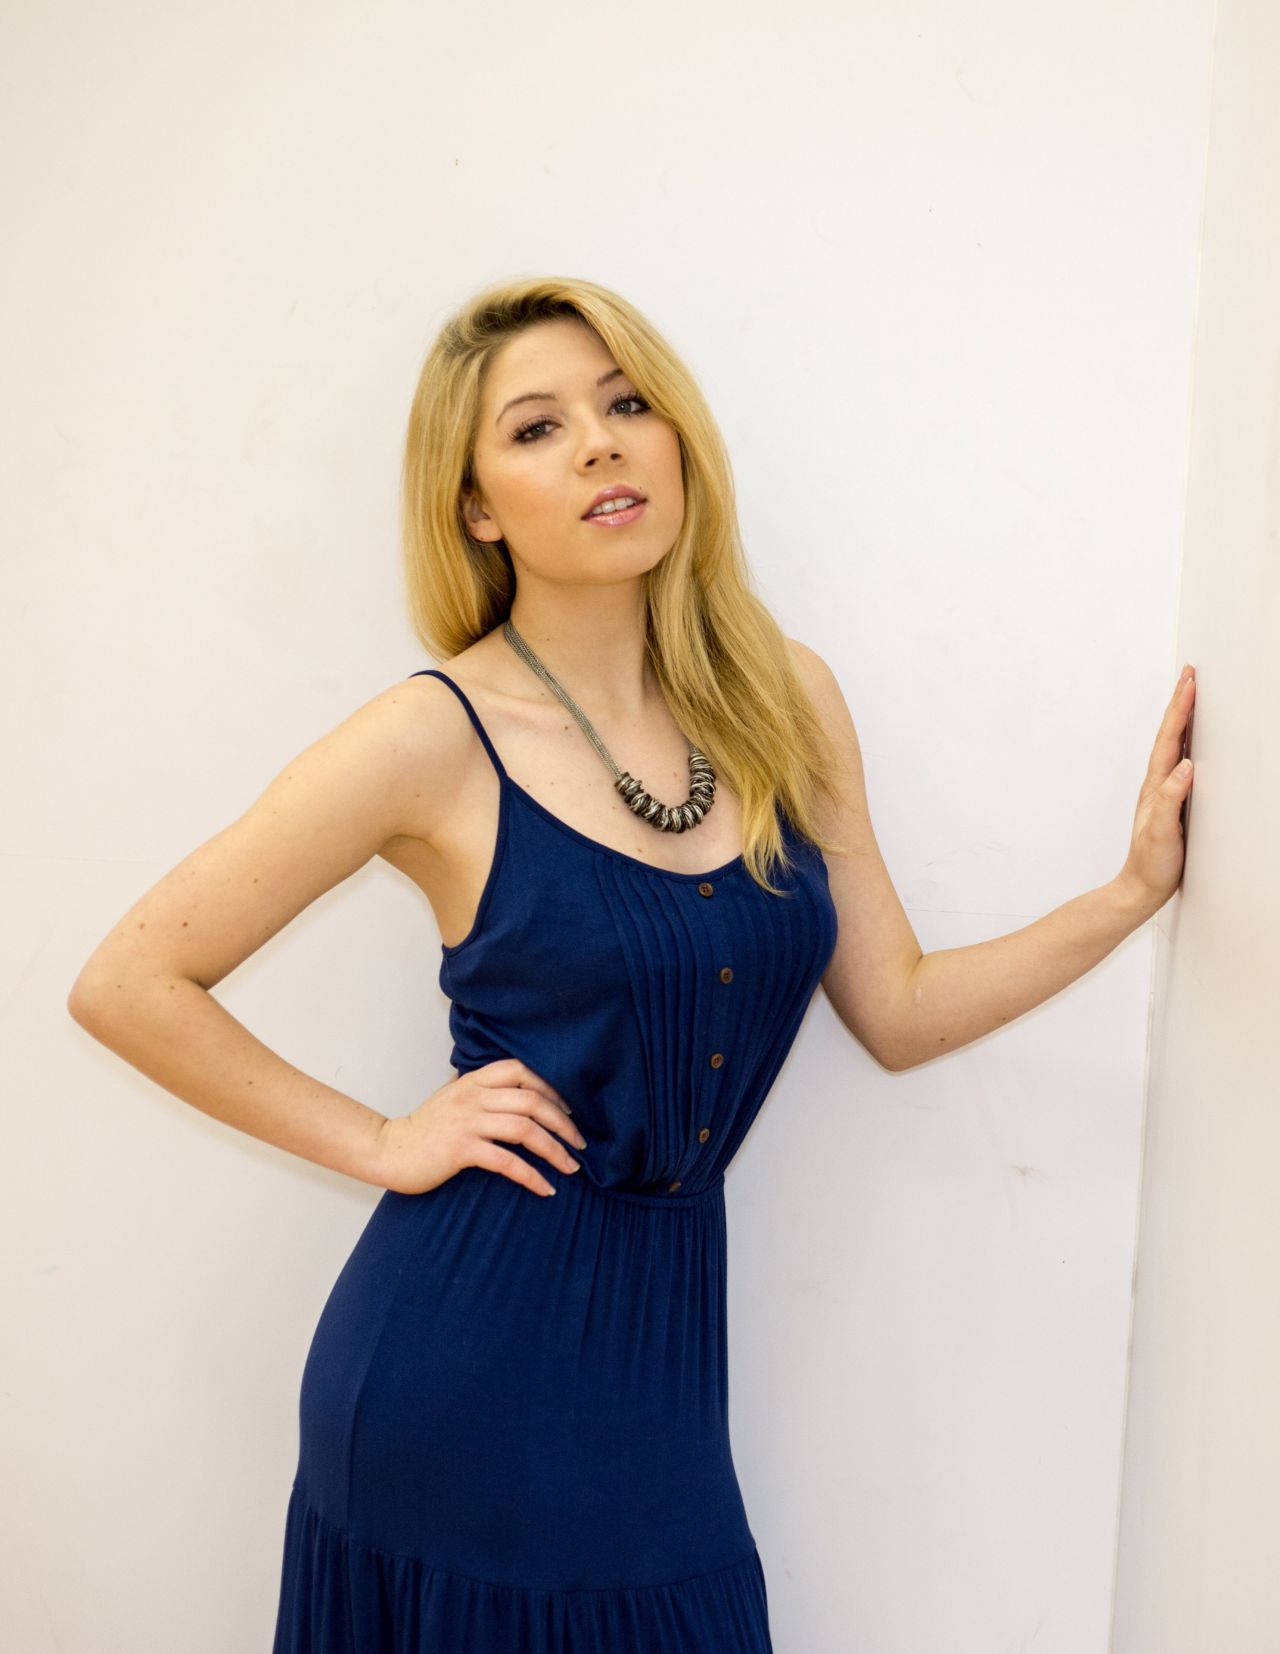 Jennette Mccurdy - NAKED MAGAZINE - February 2014 Issue